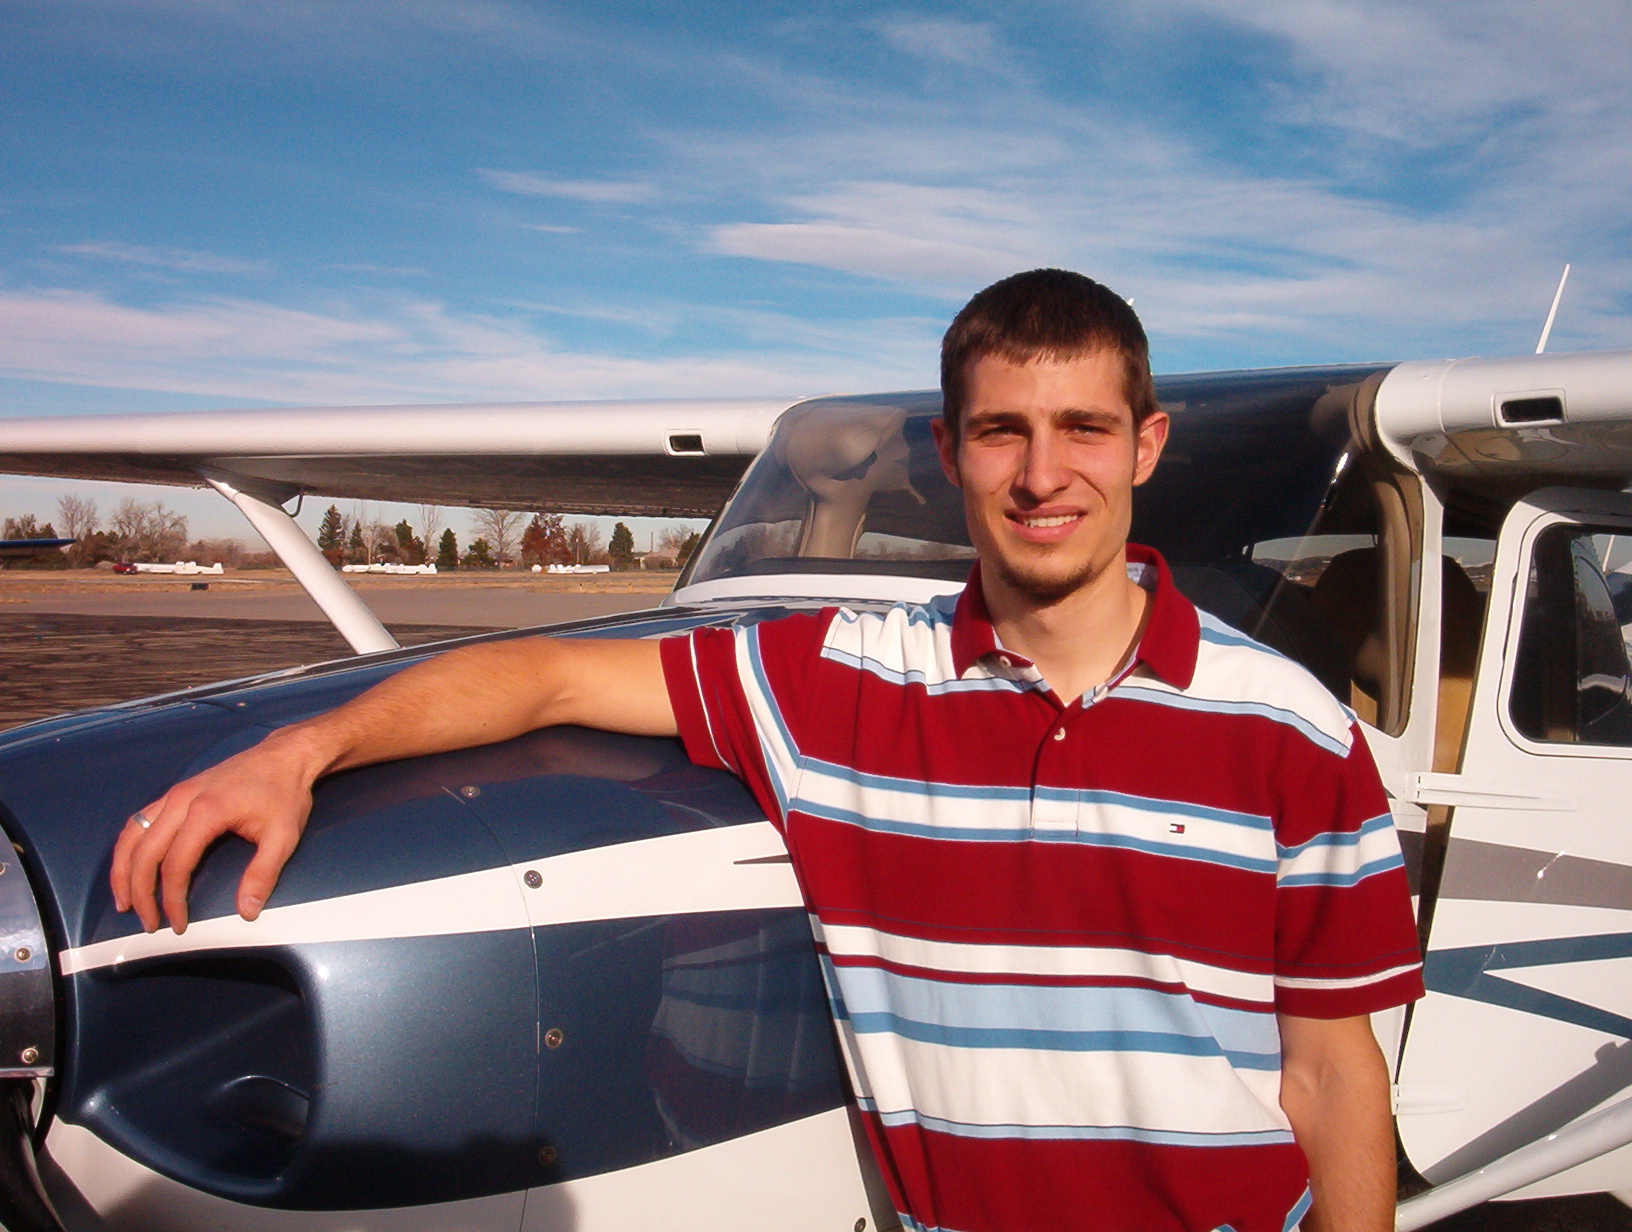 Ben Totems CFI CFII MEI Flight Instructor at Boulder Airport